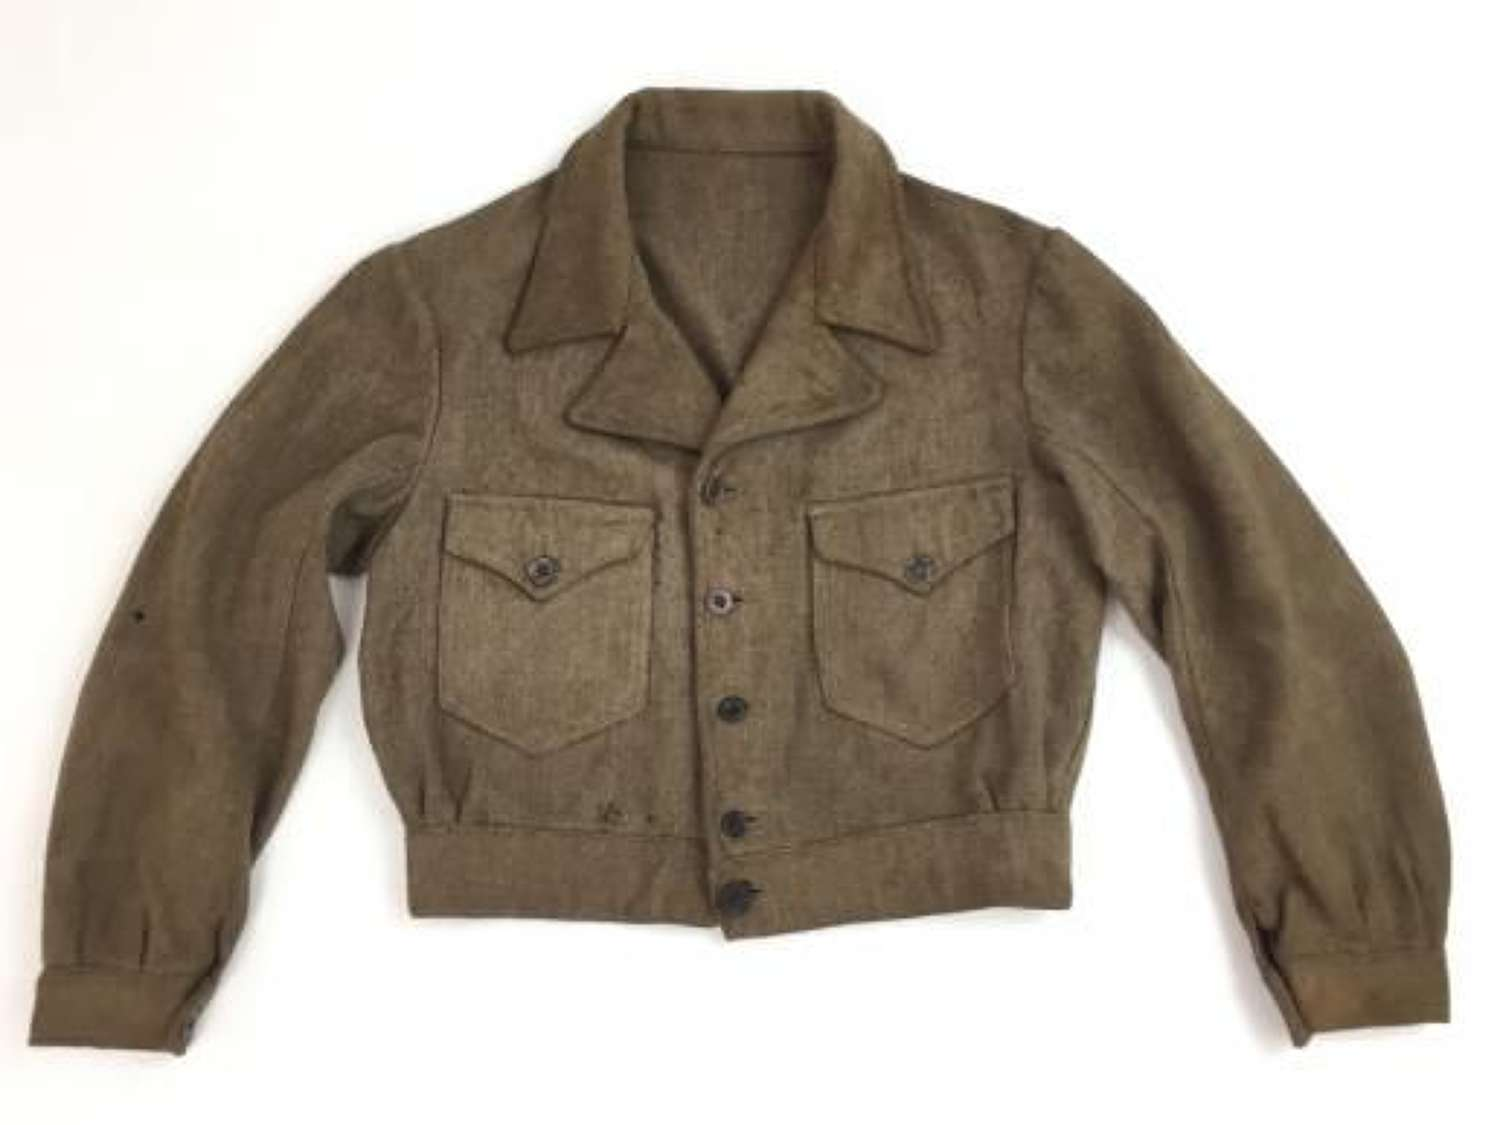 Original 1940s French Military Issue Wool Cyclist Jacket